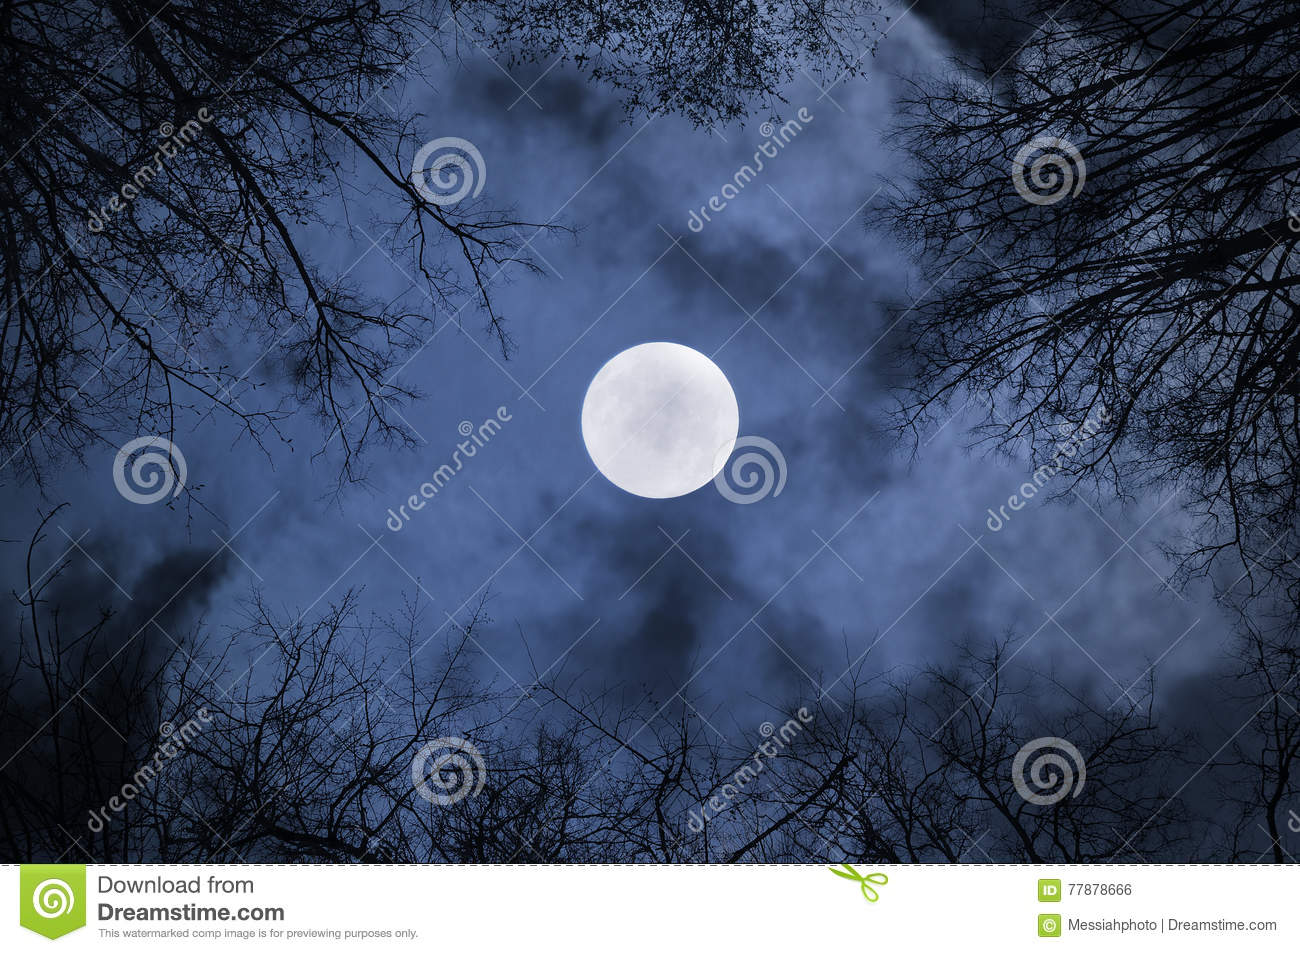 Night sky gothic landscape with full moon beneath the clouds and silhouettes of the bare trees